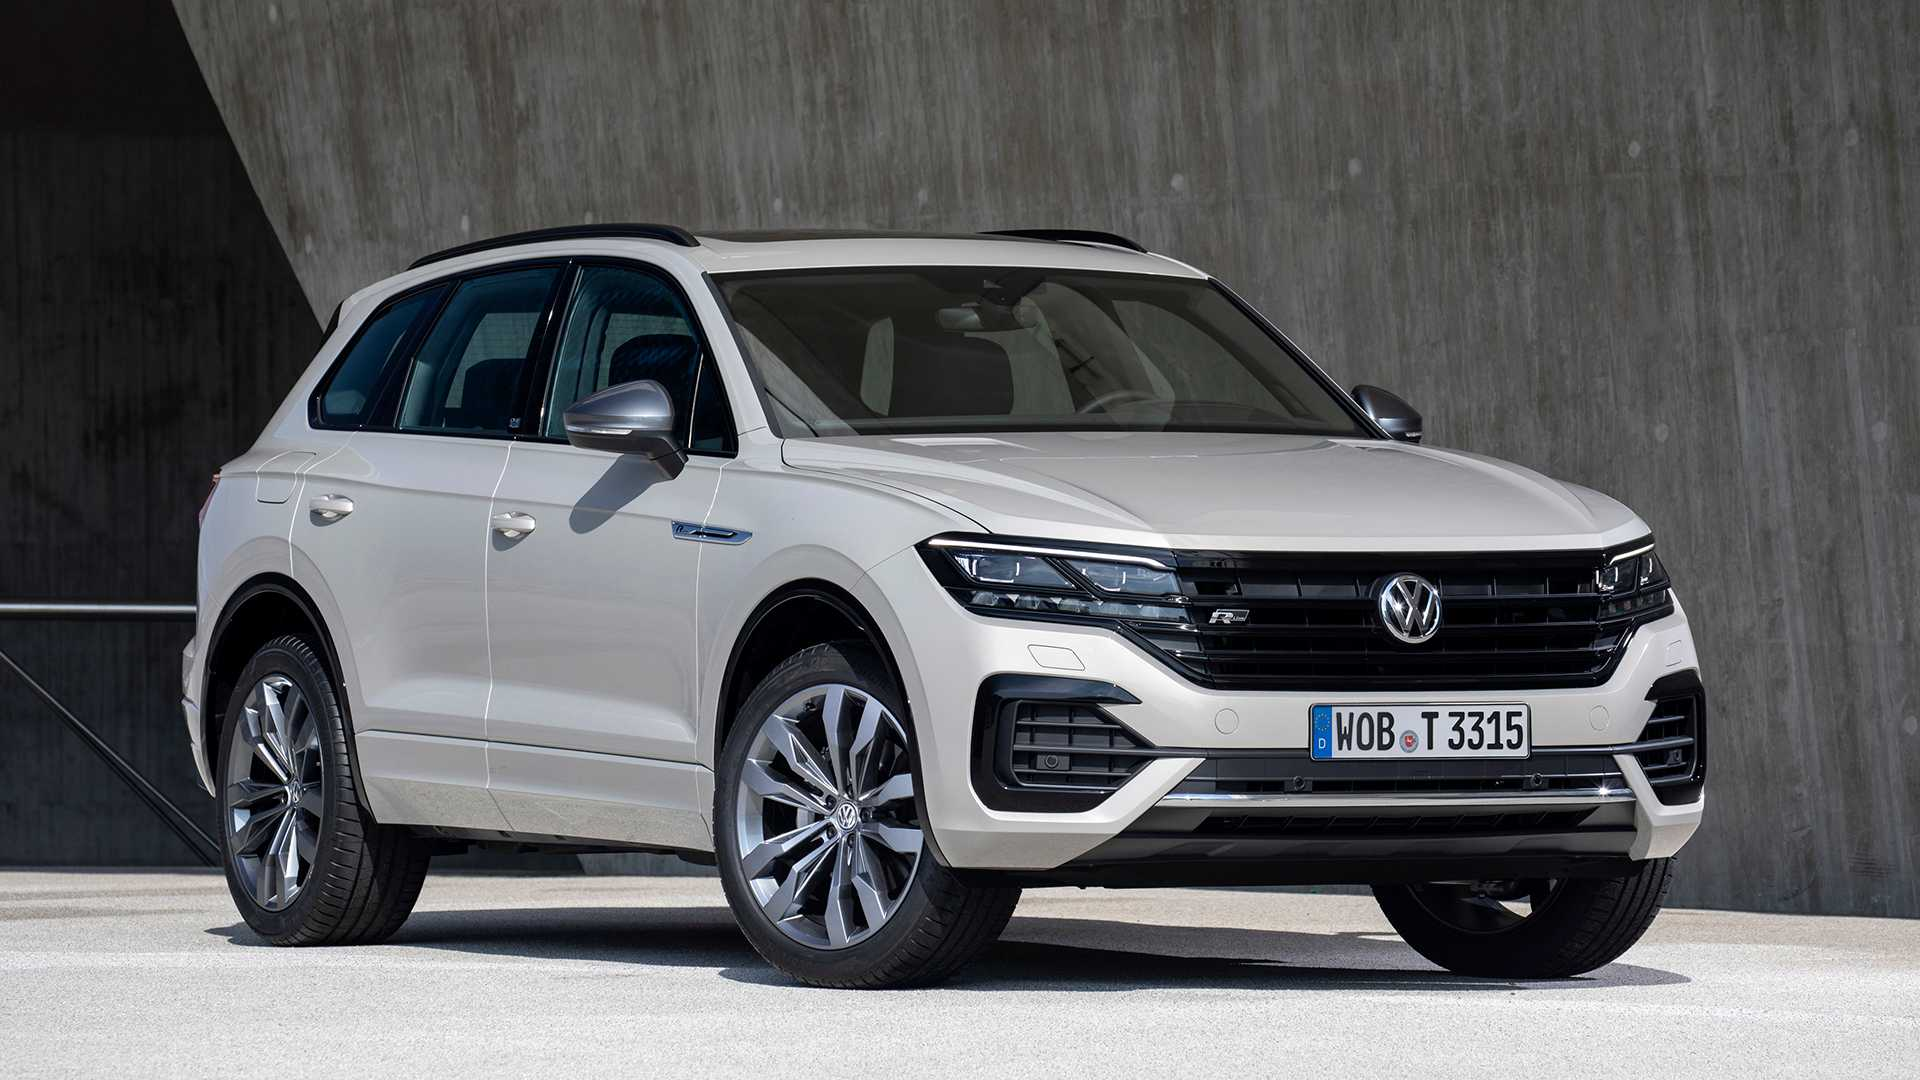 27 All New Xe Volkswagen Tiguan 2020 Redesign and Concept with Xe Volkswagen Tiguan 2020